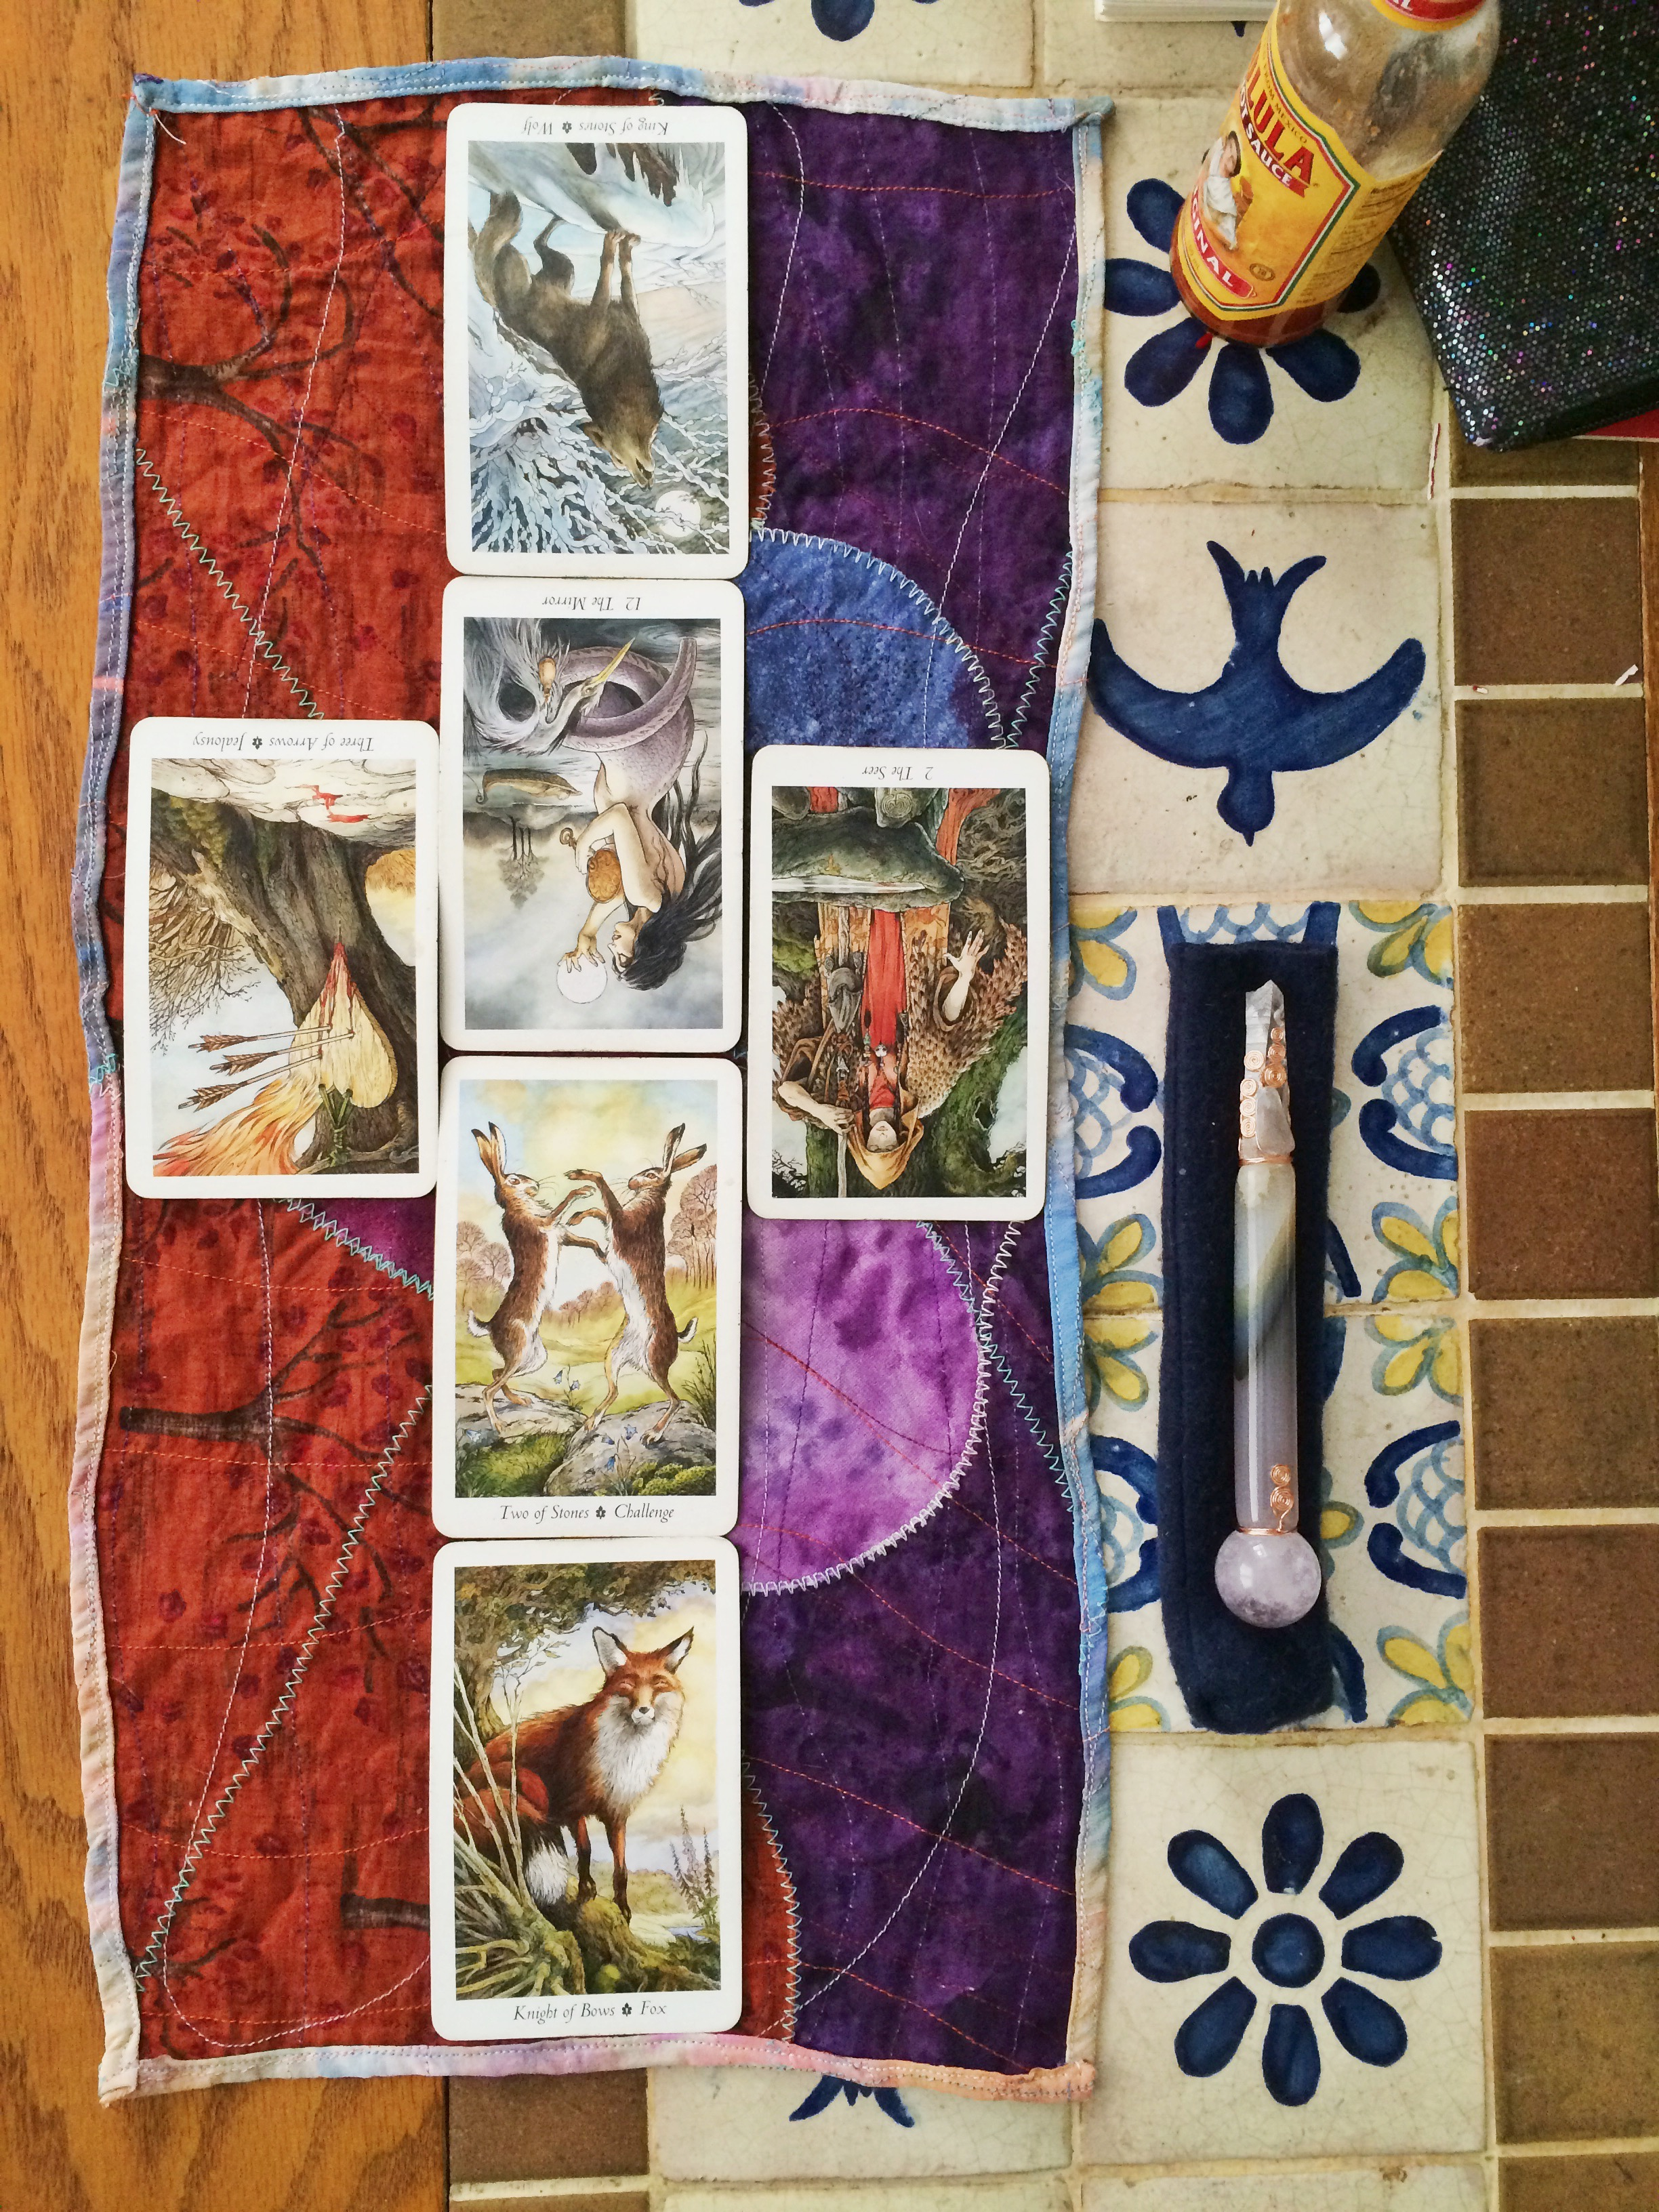 six tarot cards are laid out in a long, skinny cross pattern. to the right is a crystal wand atop a dark blue cloth sheath. beneath it are Mexican tiles of birds and flowers. a bottle of Cholula hot sauce lurks in the background